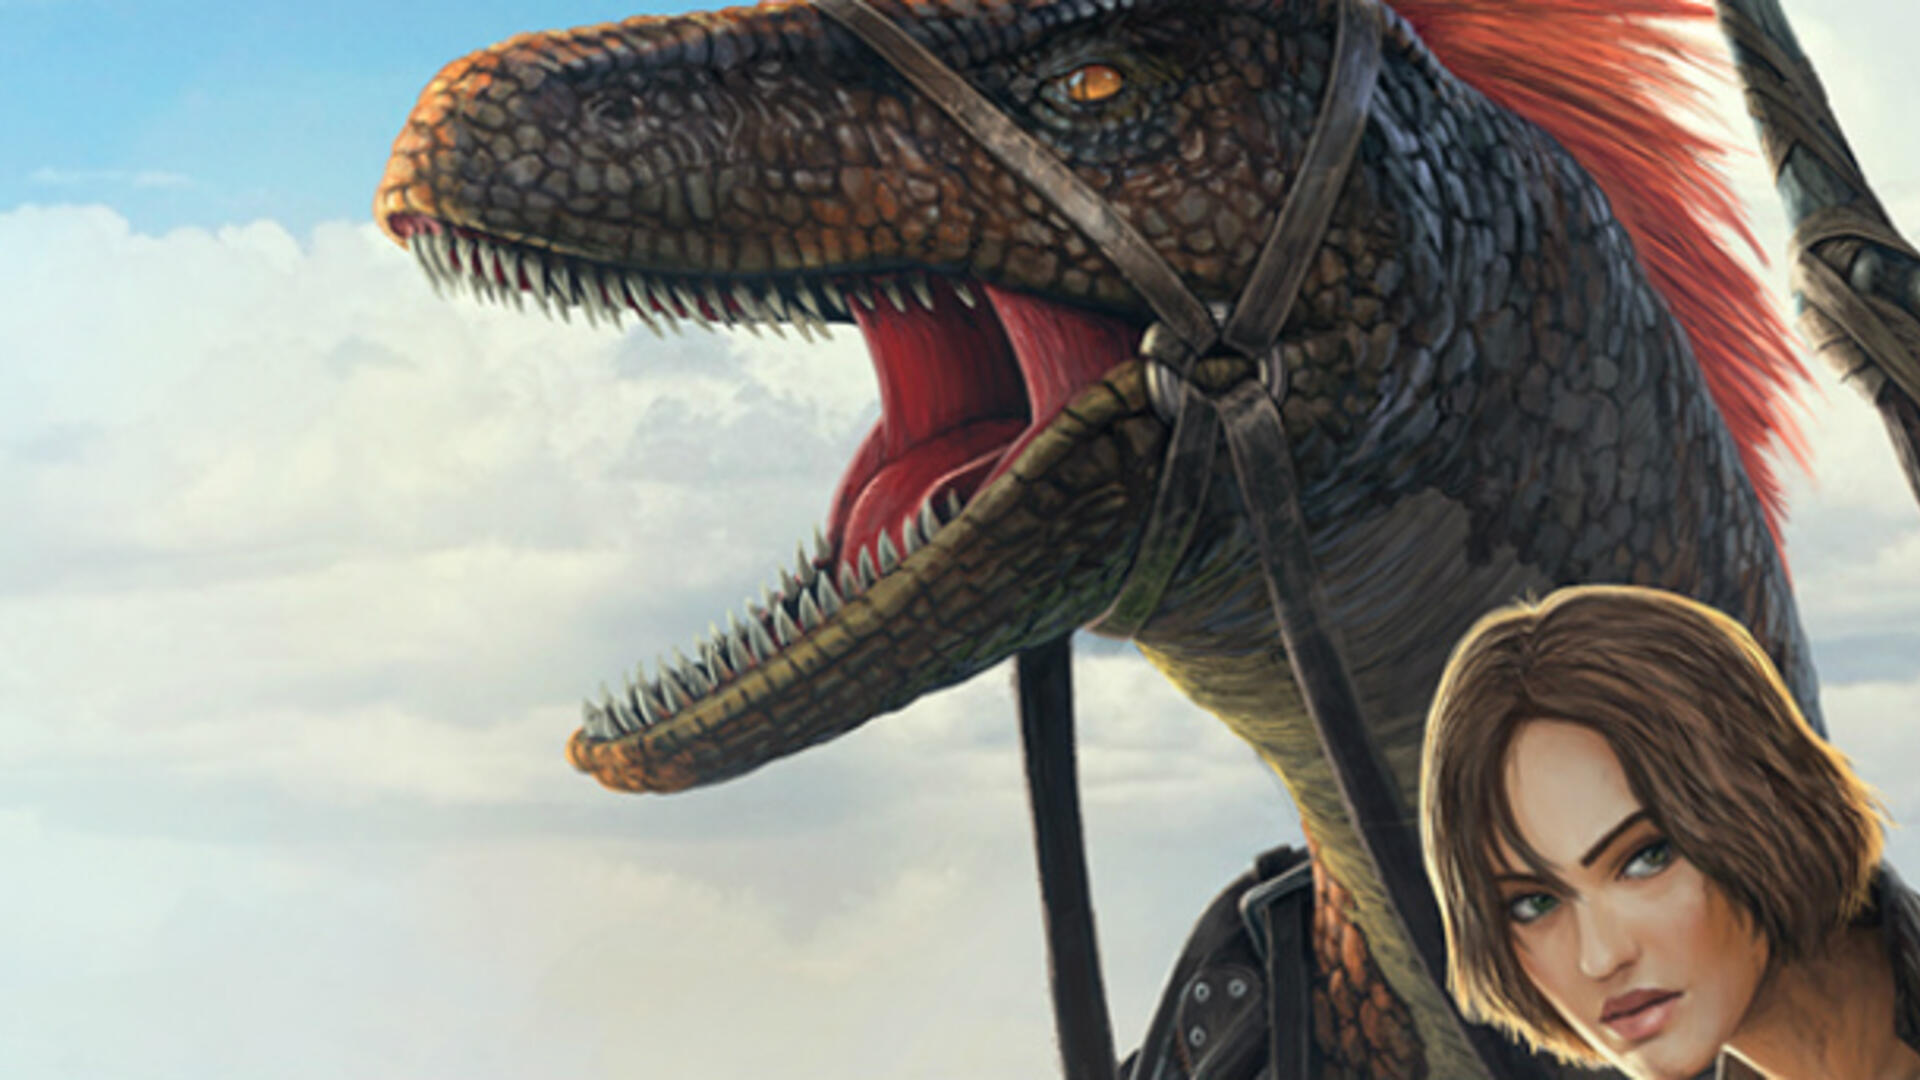 Ark: Survival Evolved Comes to Mobile Next Week as a F2P